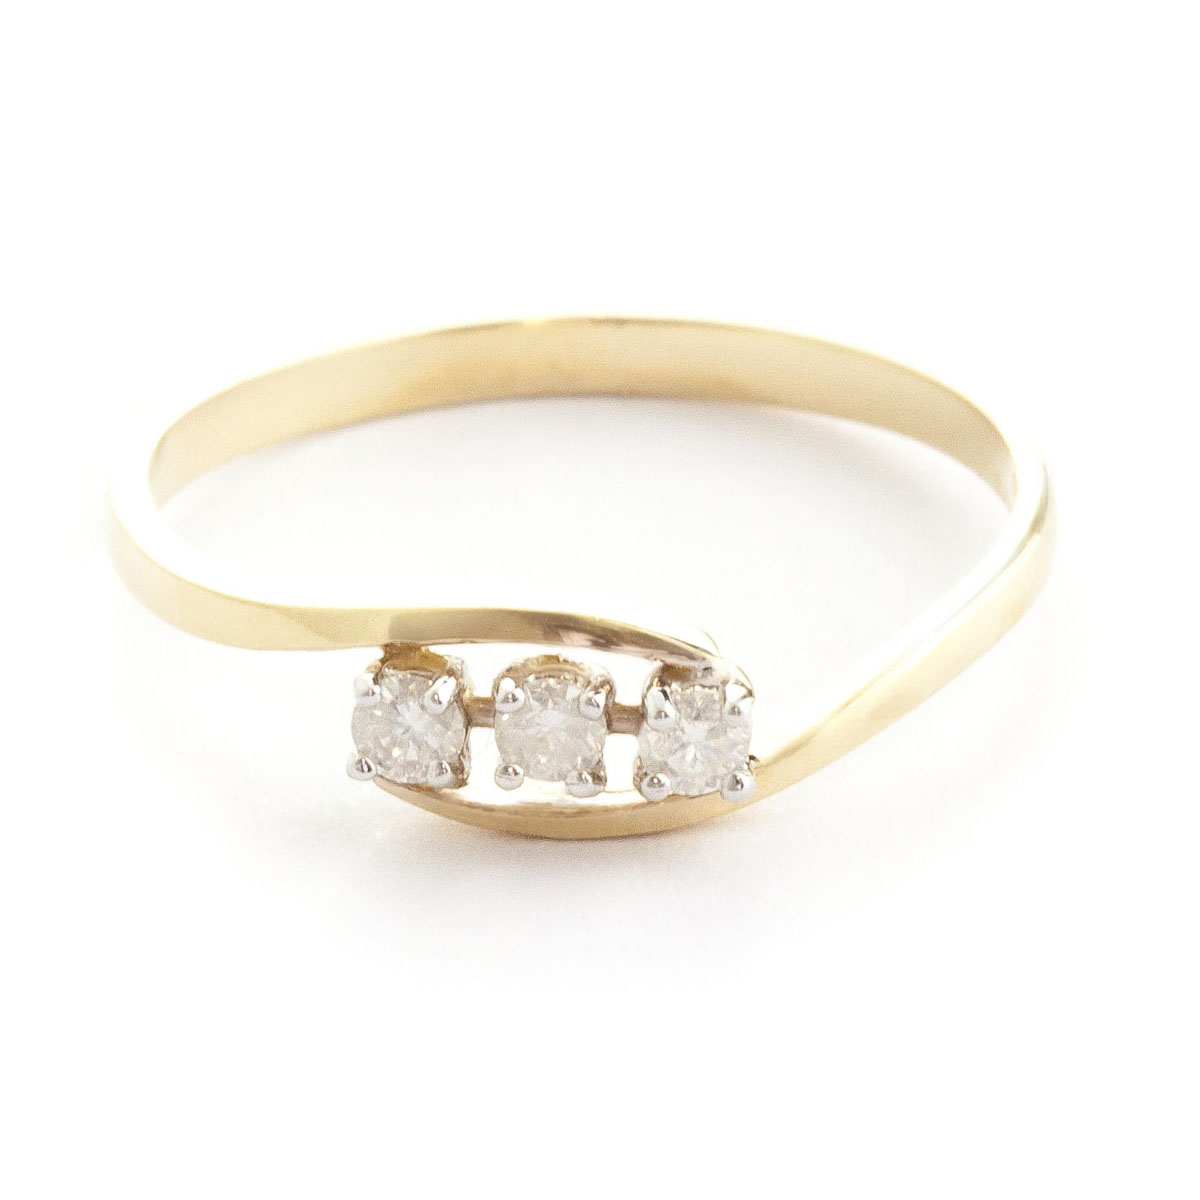 Round Cut Diamond Ring 0.15 ctw in 18ct Gold